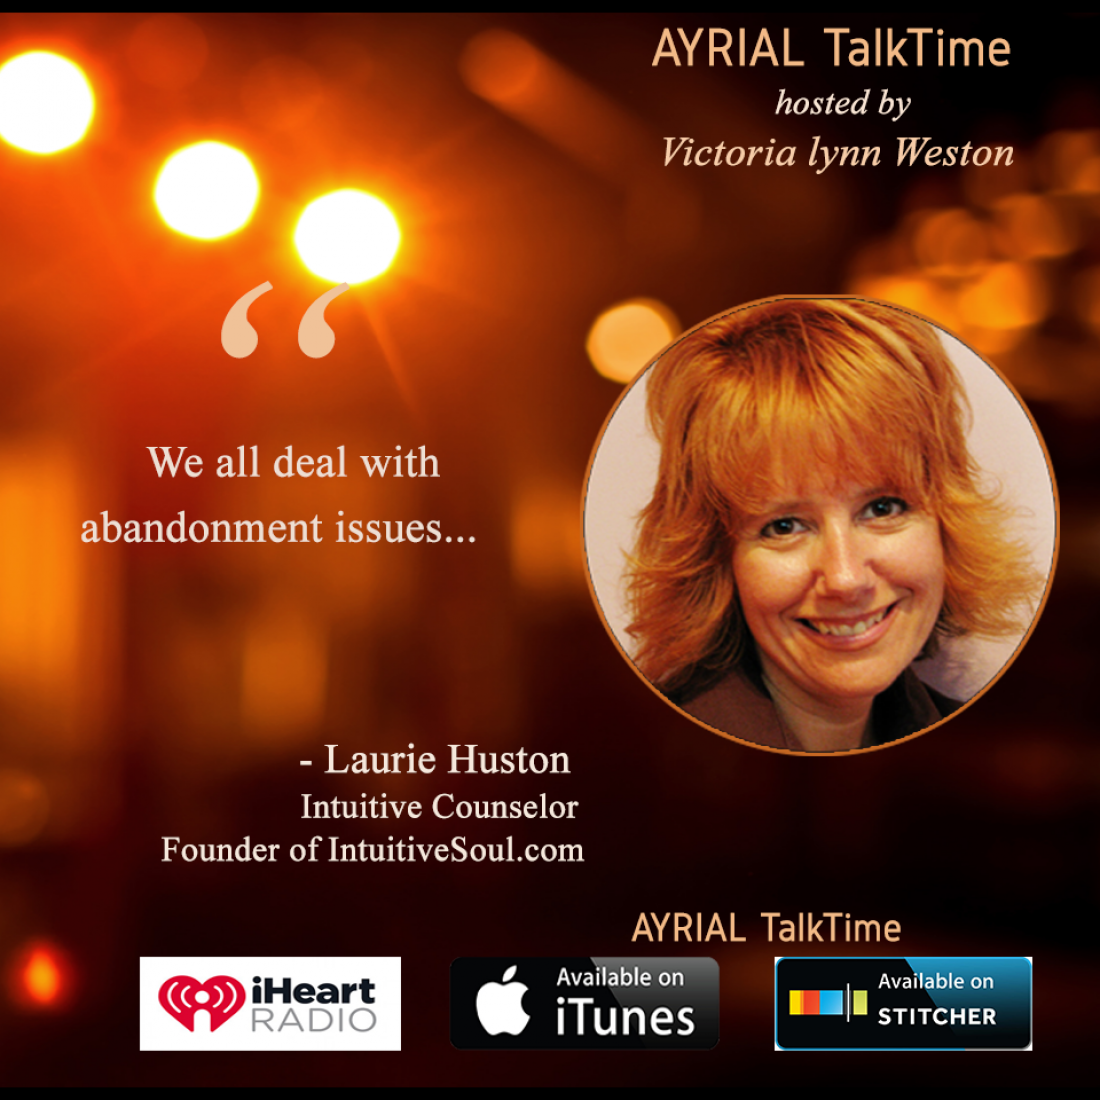 Laurie Huston Intuitive Counselor